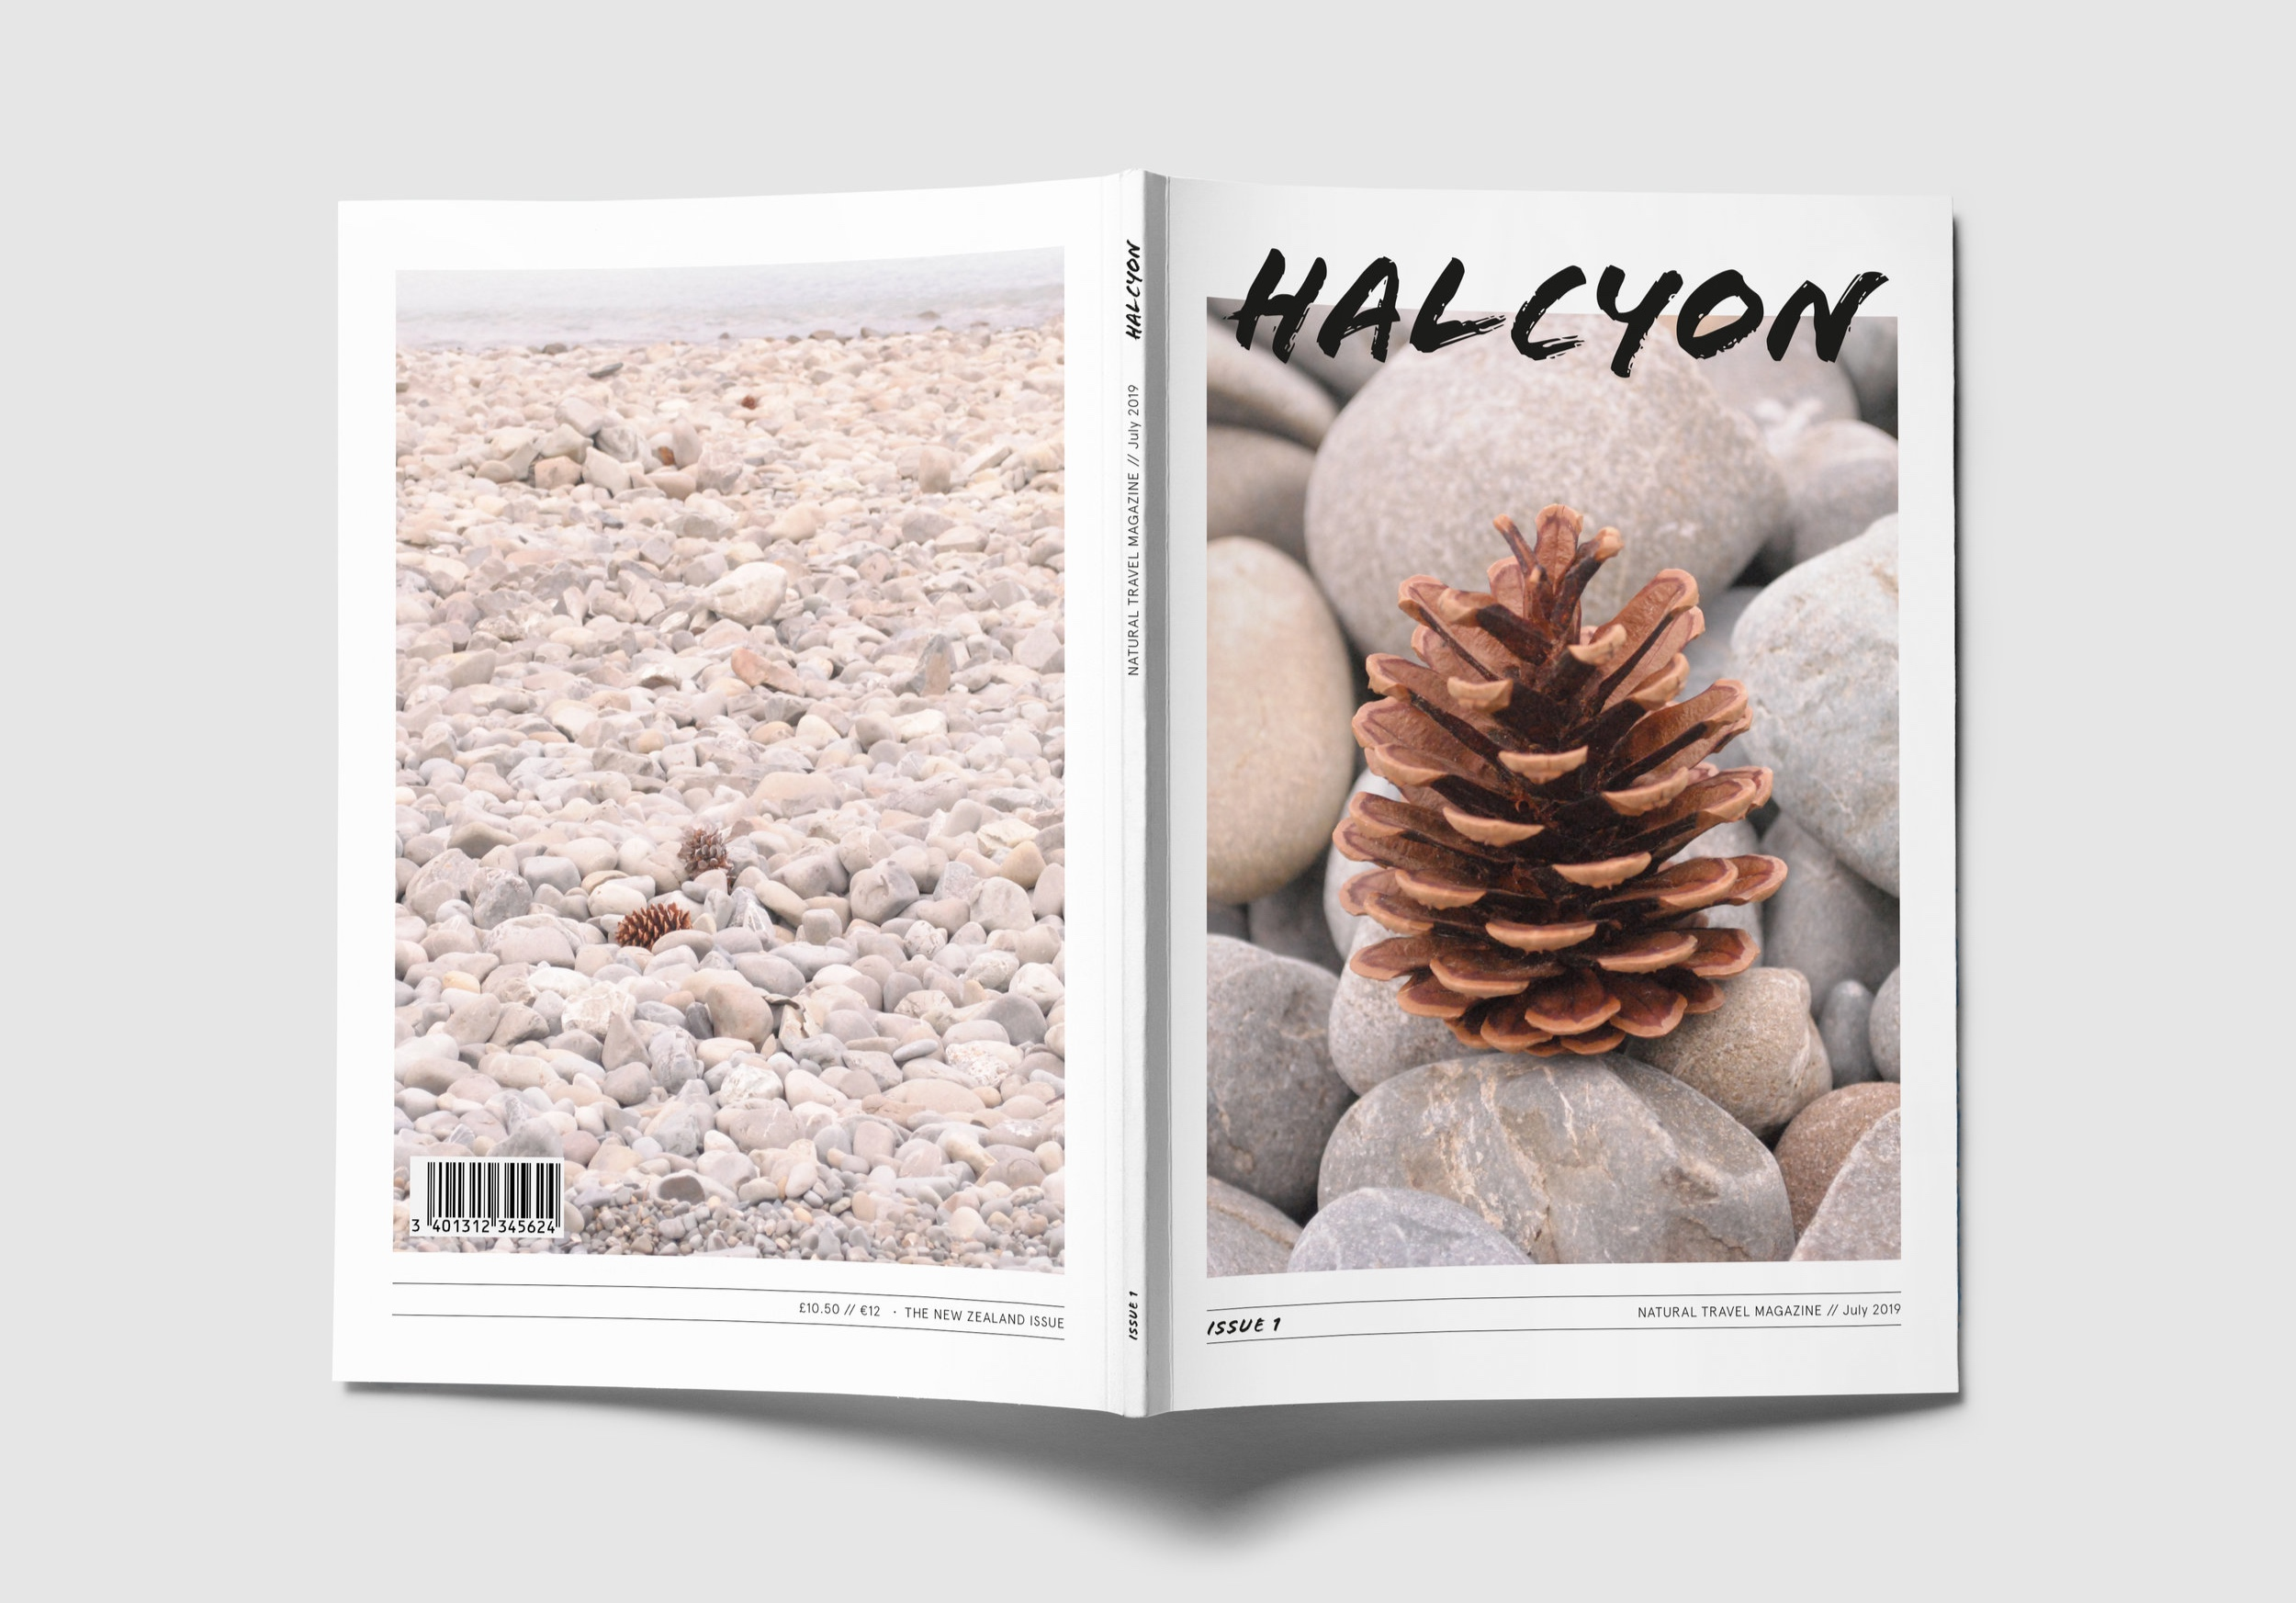 Halcyon-Magazine_Layout-Design_Cover.jpg